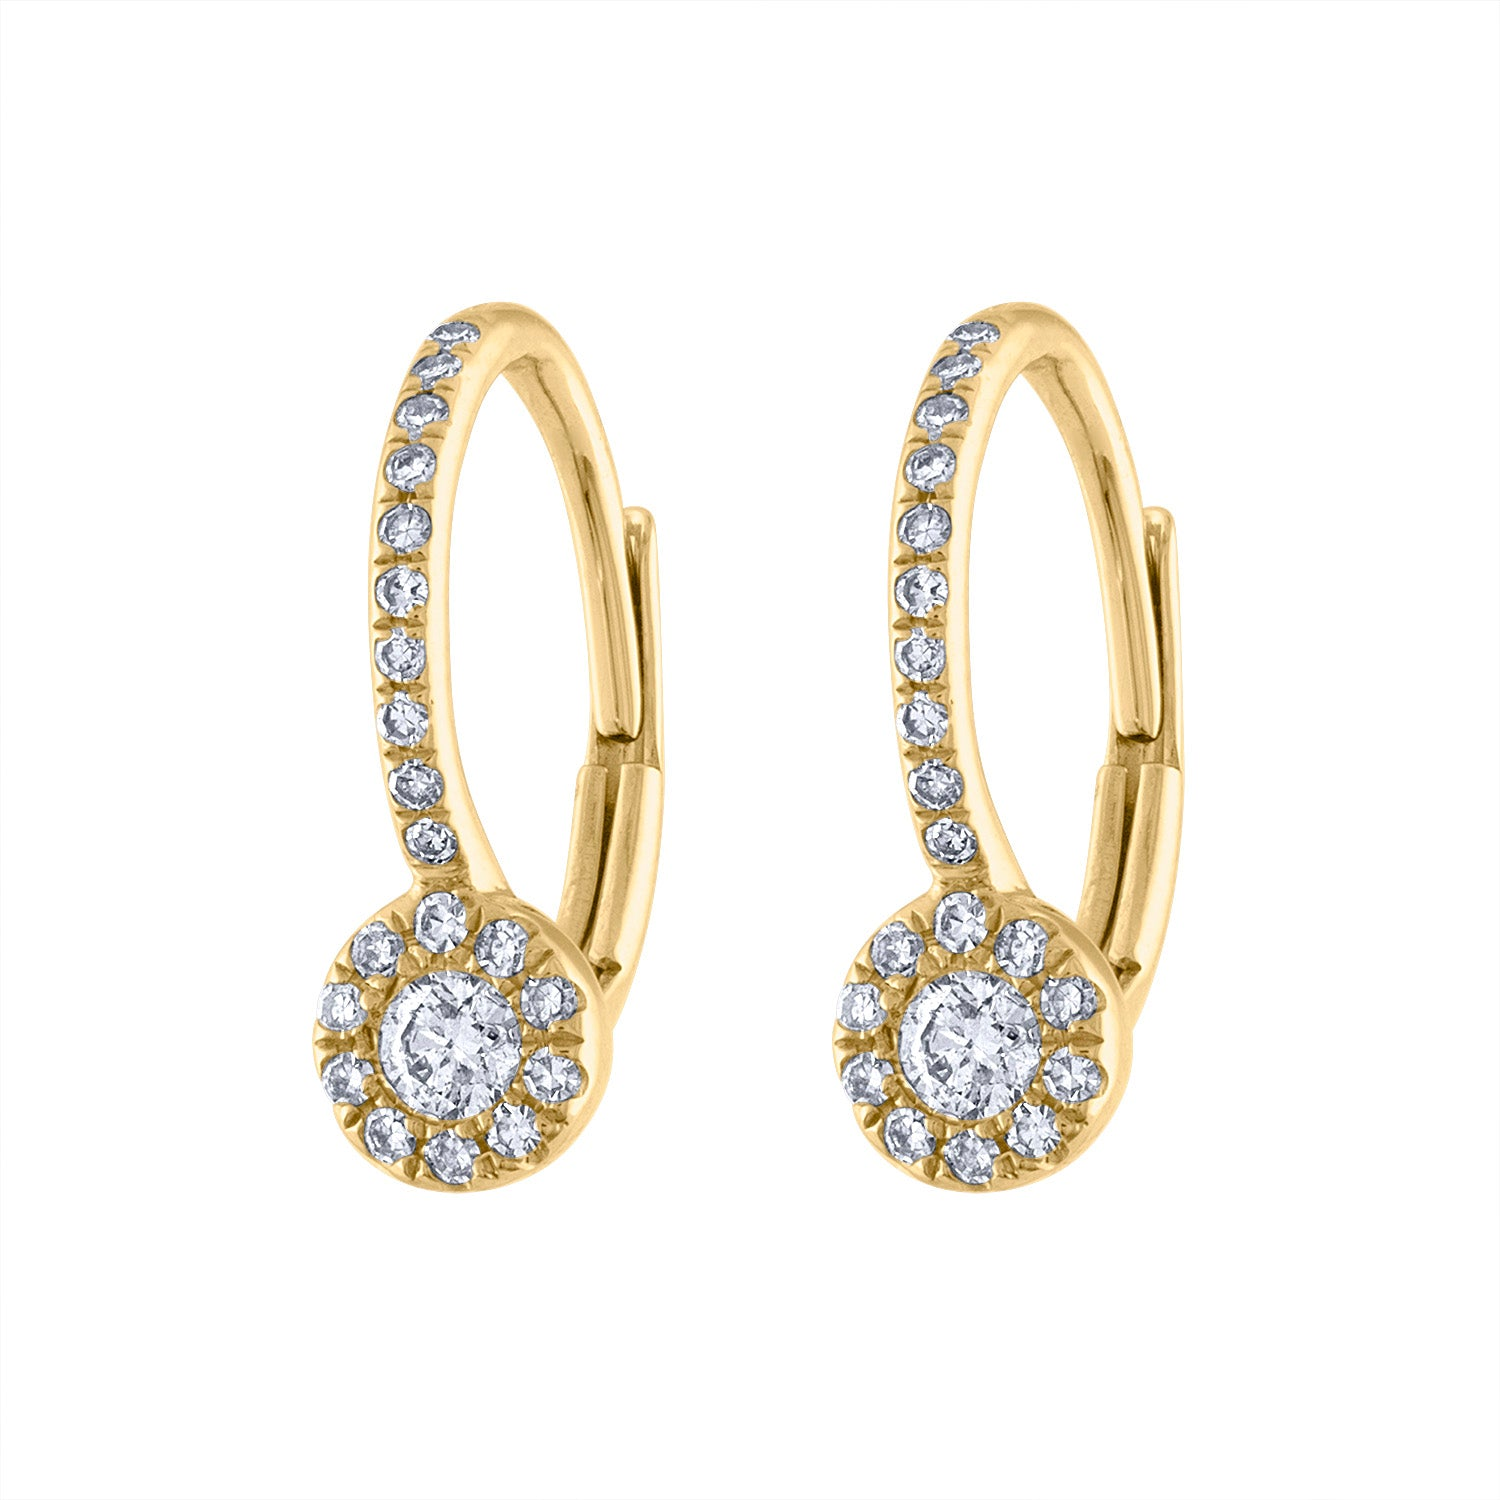 14KT GOLD DIAMOND MARTINI SET EARRING